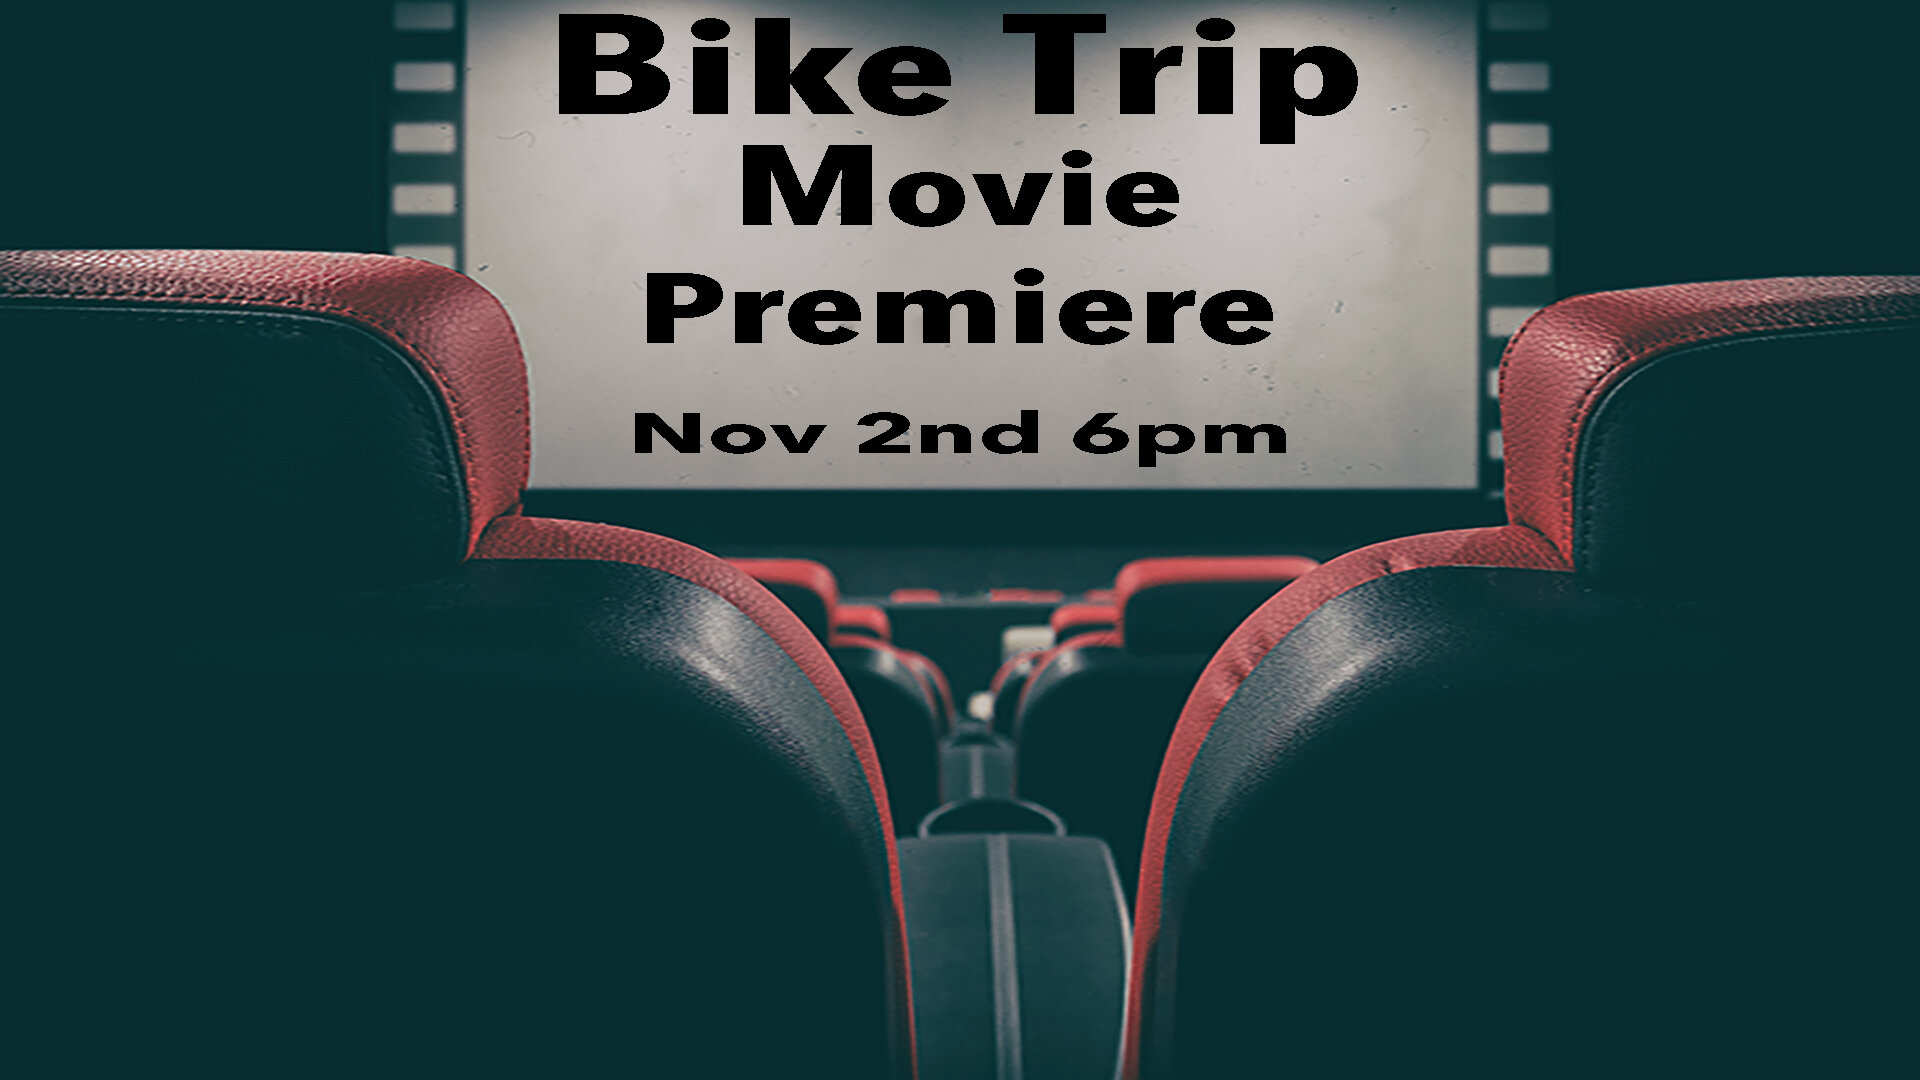 Bike Trip Movie Premiere slide.jpg